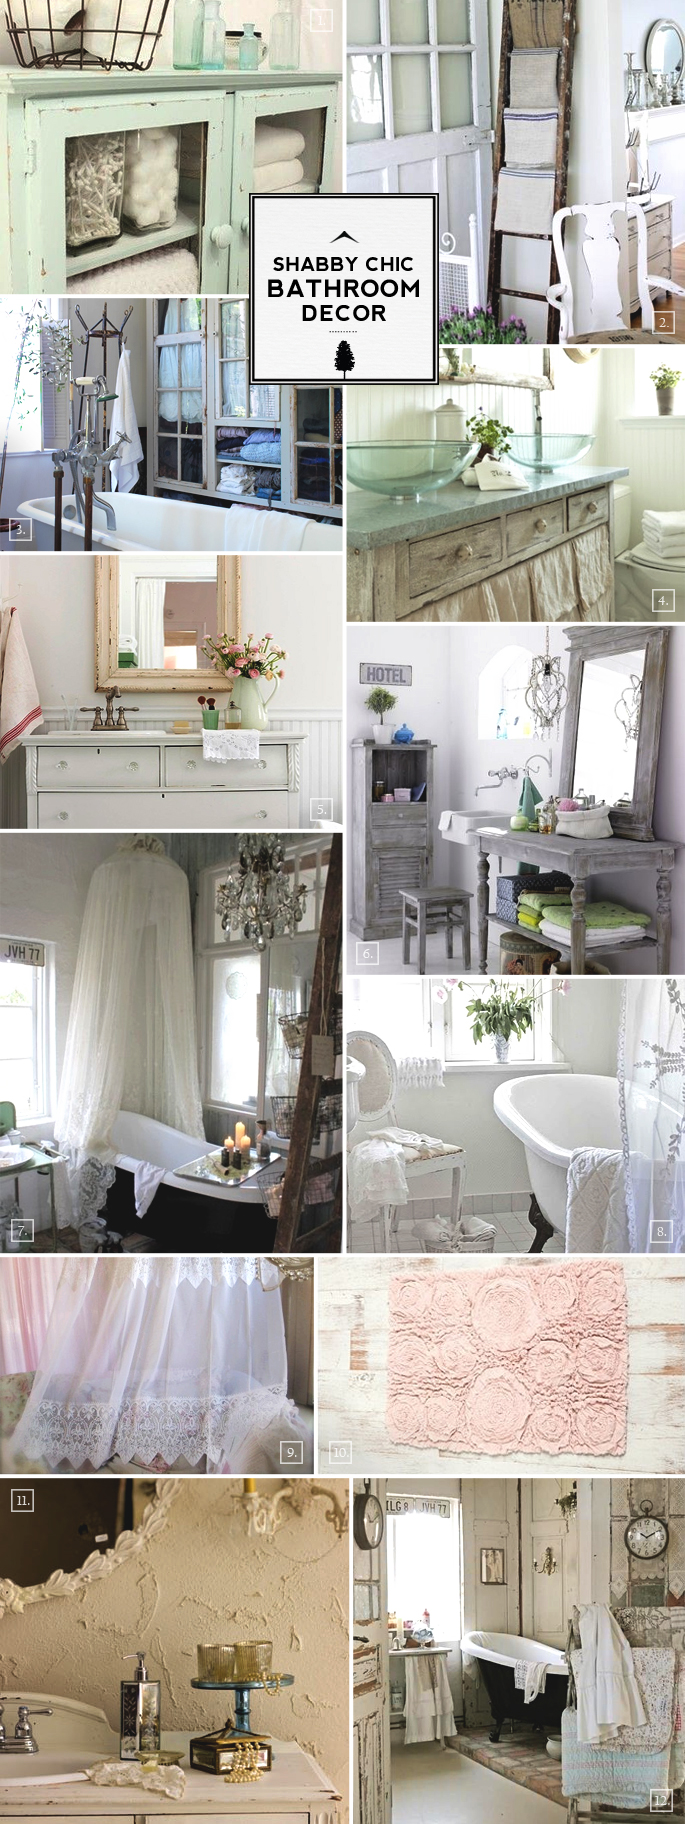 Shabby chic bathroom cabi furniture bathrooms for trend - Shabby chic storage ideas ...